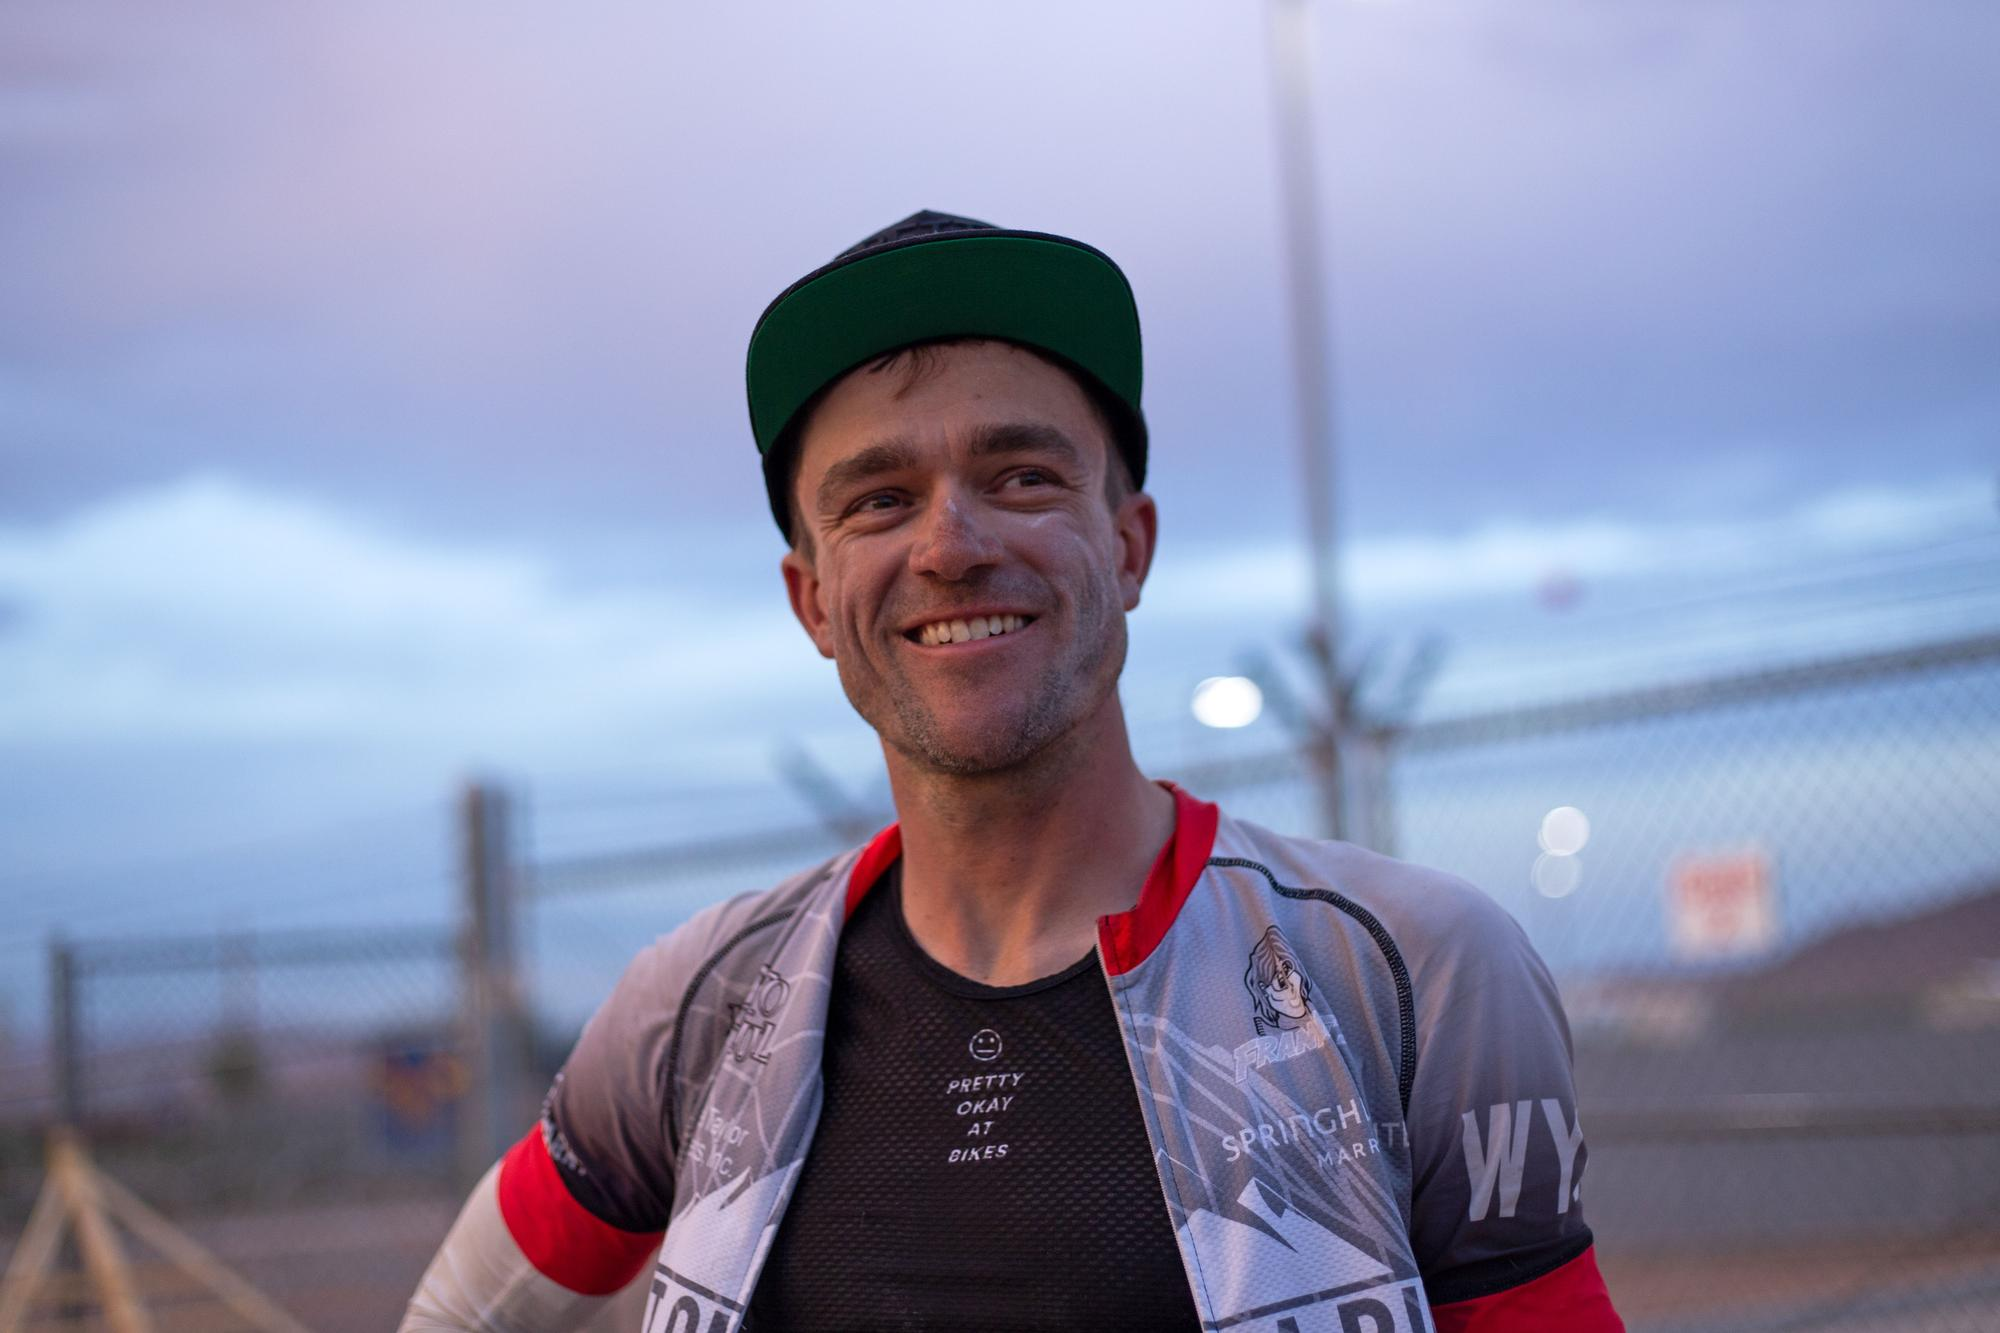 Chris Seistrup, the winner of the 2019 Tour Divide. (Rugile Kaladyte)